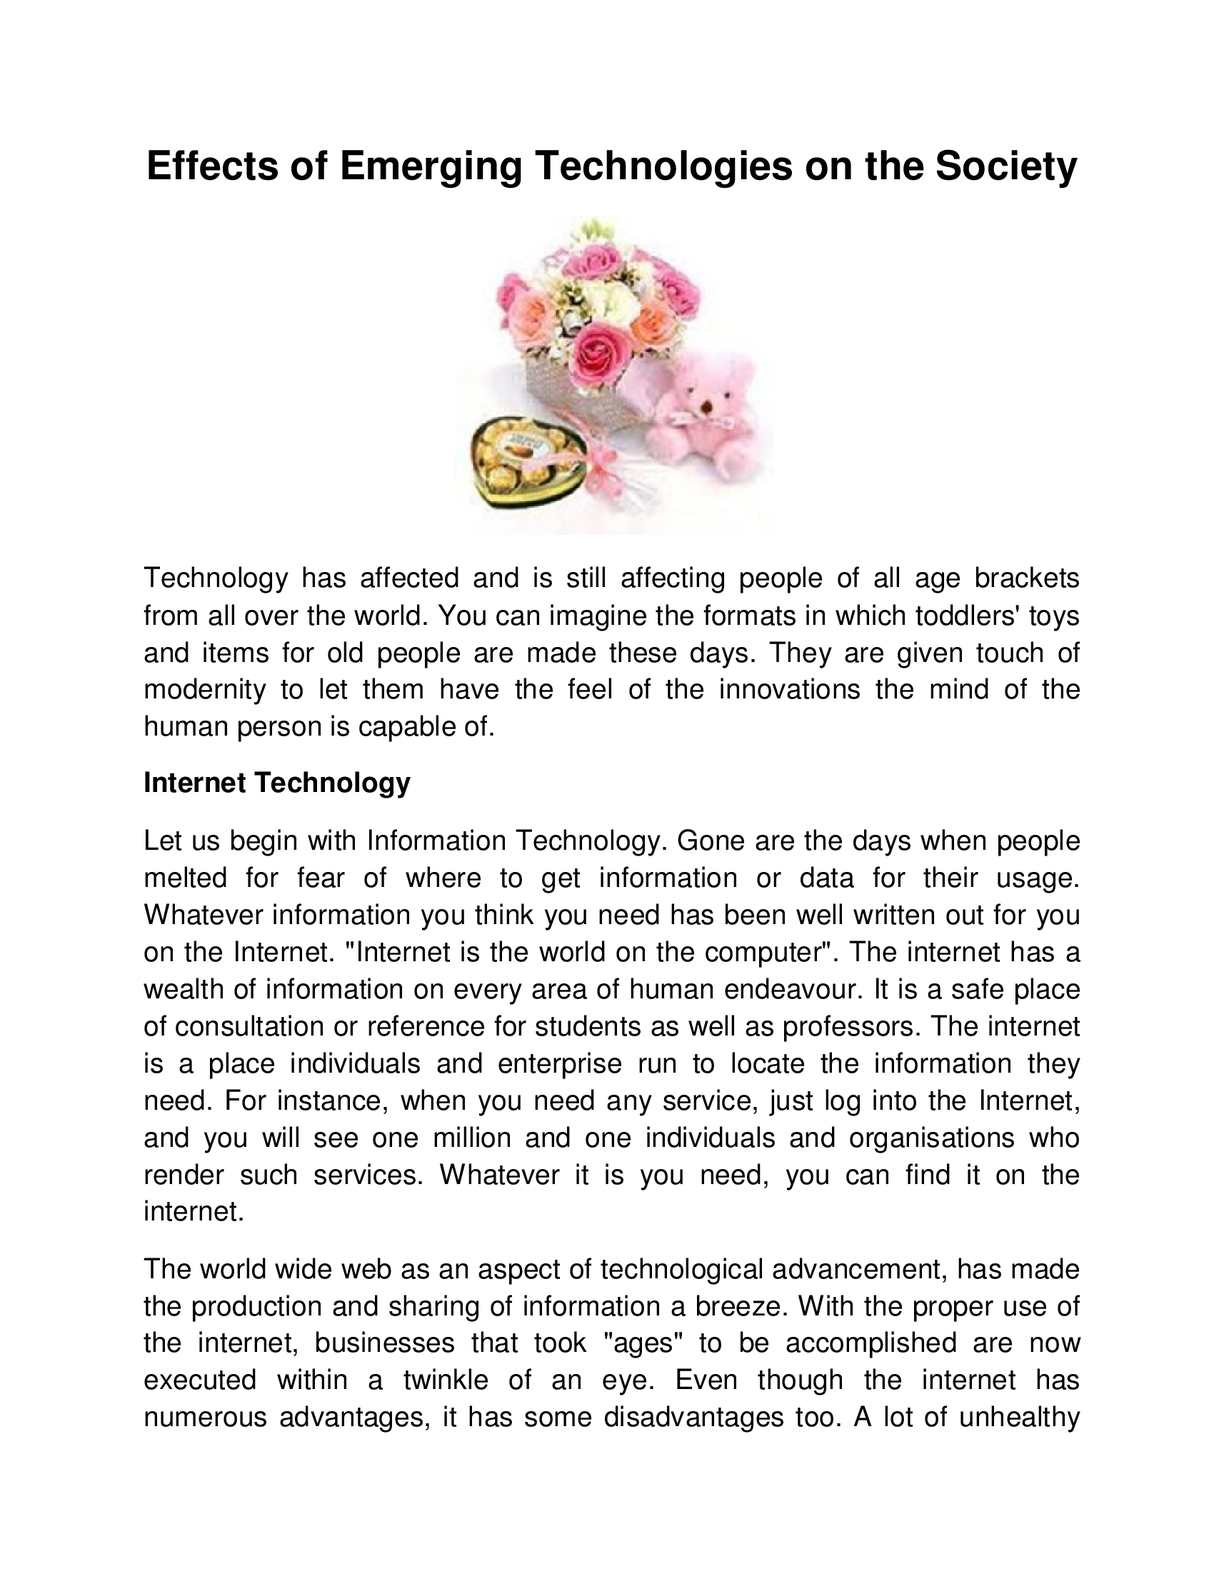 the effect of technology on society essay